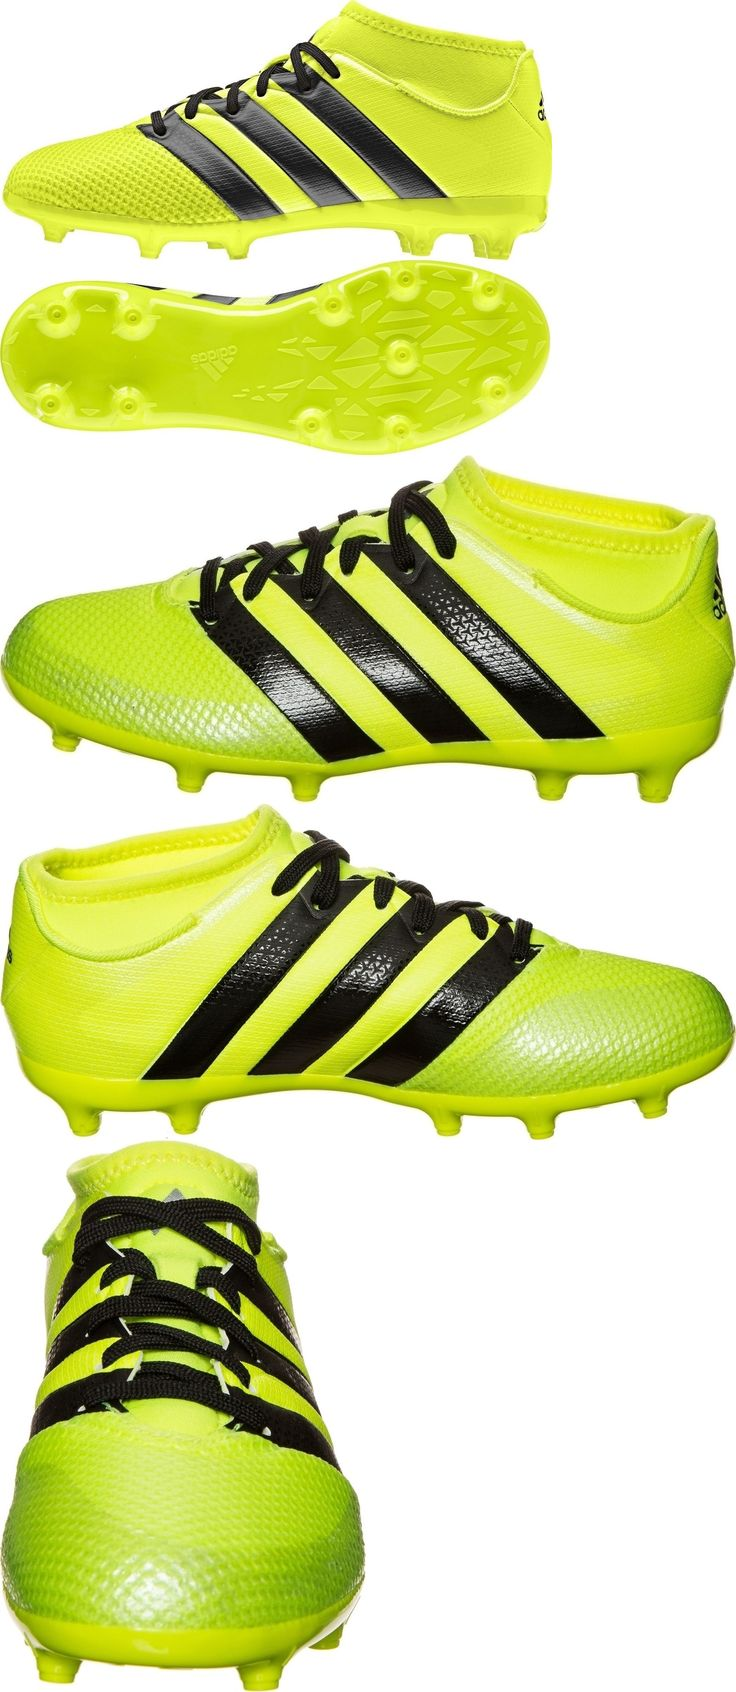 Youth 159177: Adidas Ace 16.3 Primemesh Youth Soccer Cleats Boys European Football Shoes New BUY IT NOW ONLY: $59.95